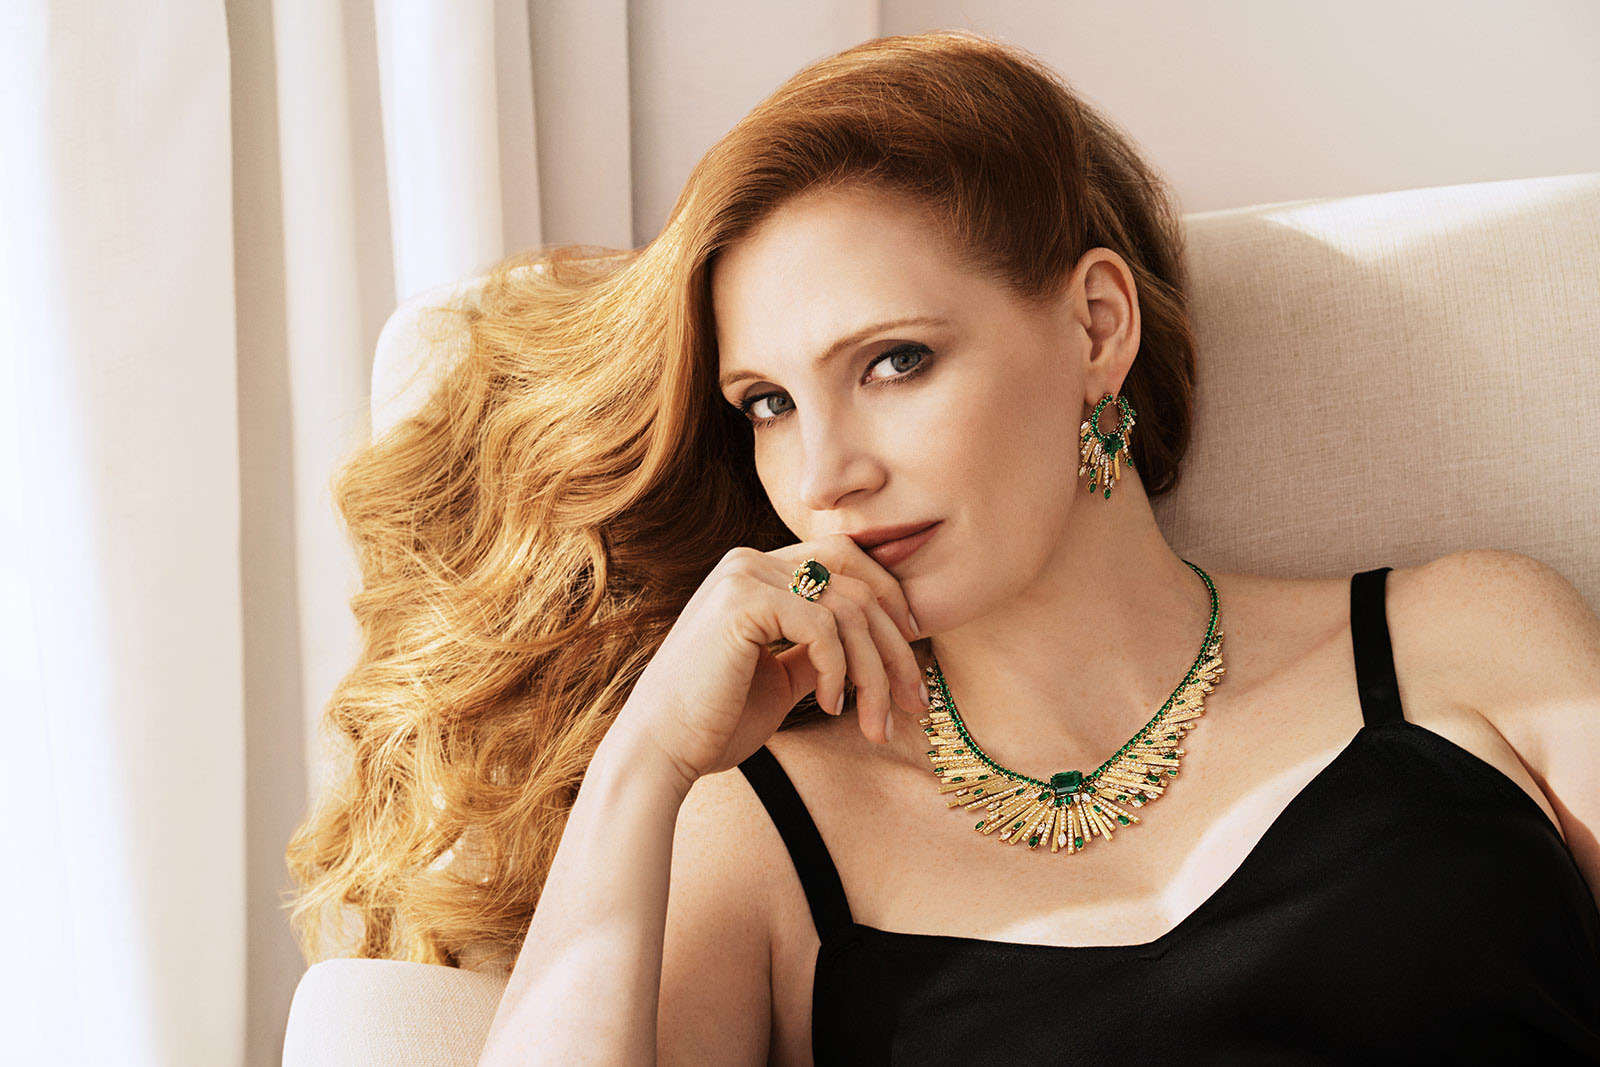 Piaget ambassador Jessica Chastain in the 'Midnight Sun' necklace, earrings and ring from the 'Sunlight Escape' collection in Colombian emeralds, diamonds and yellow gold